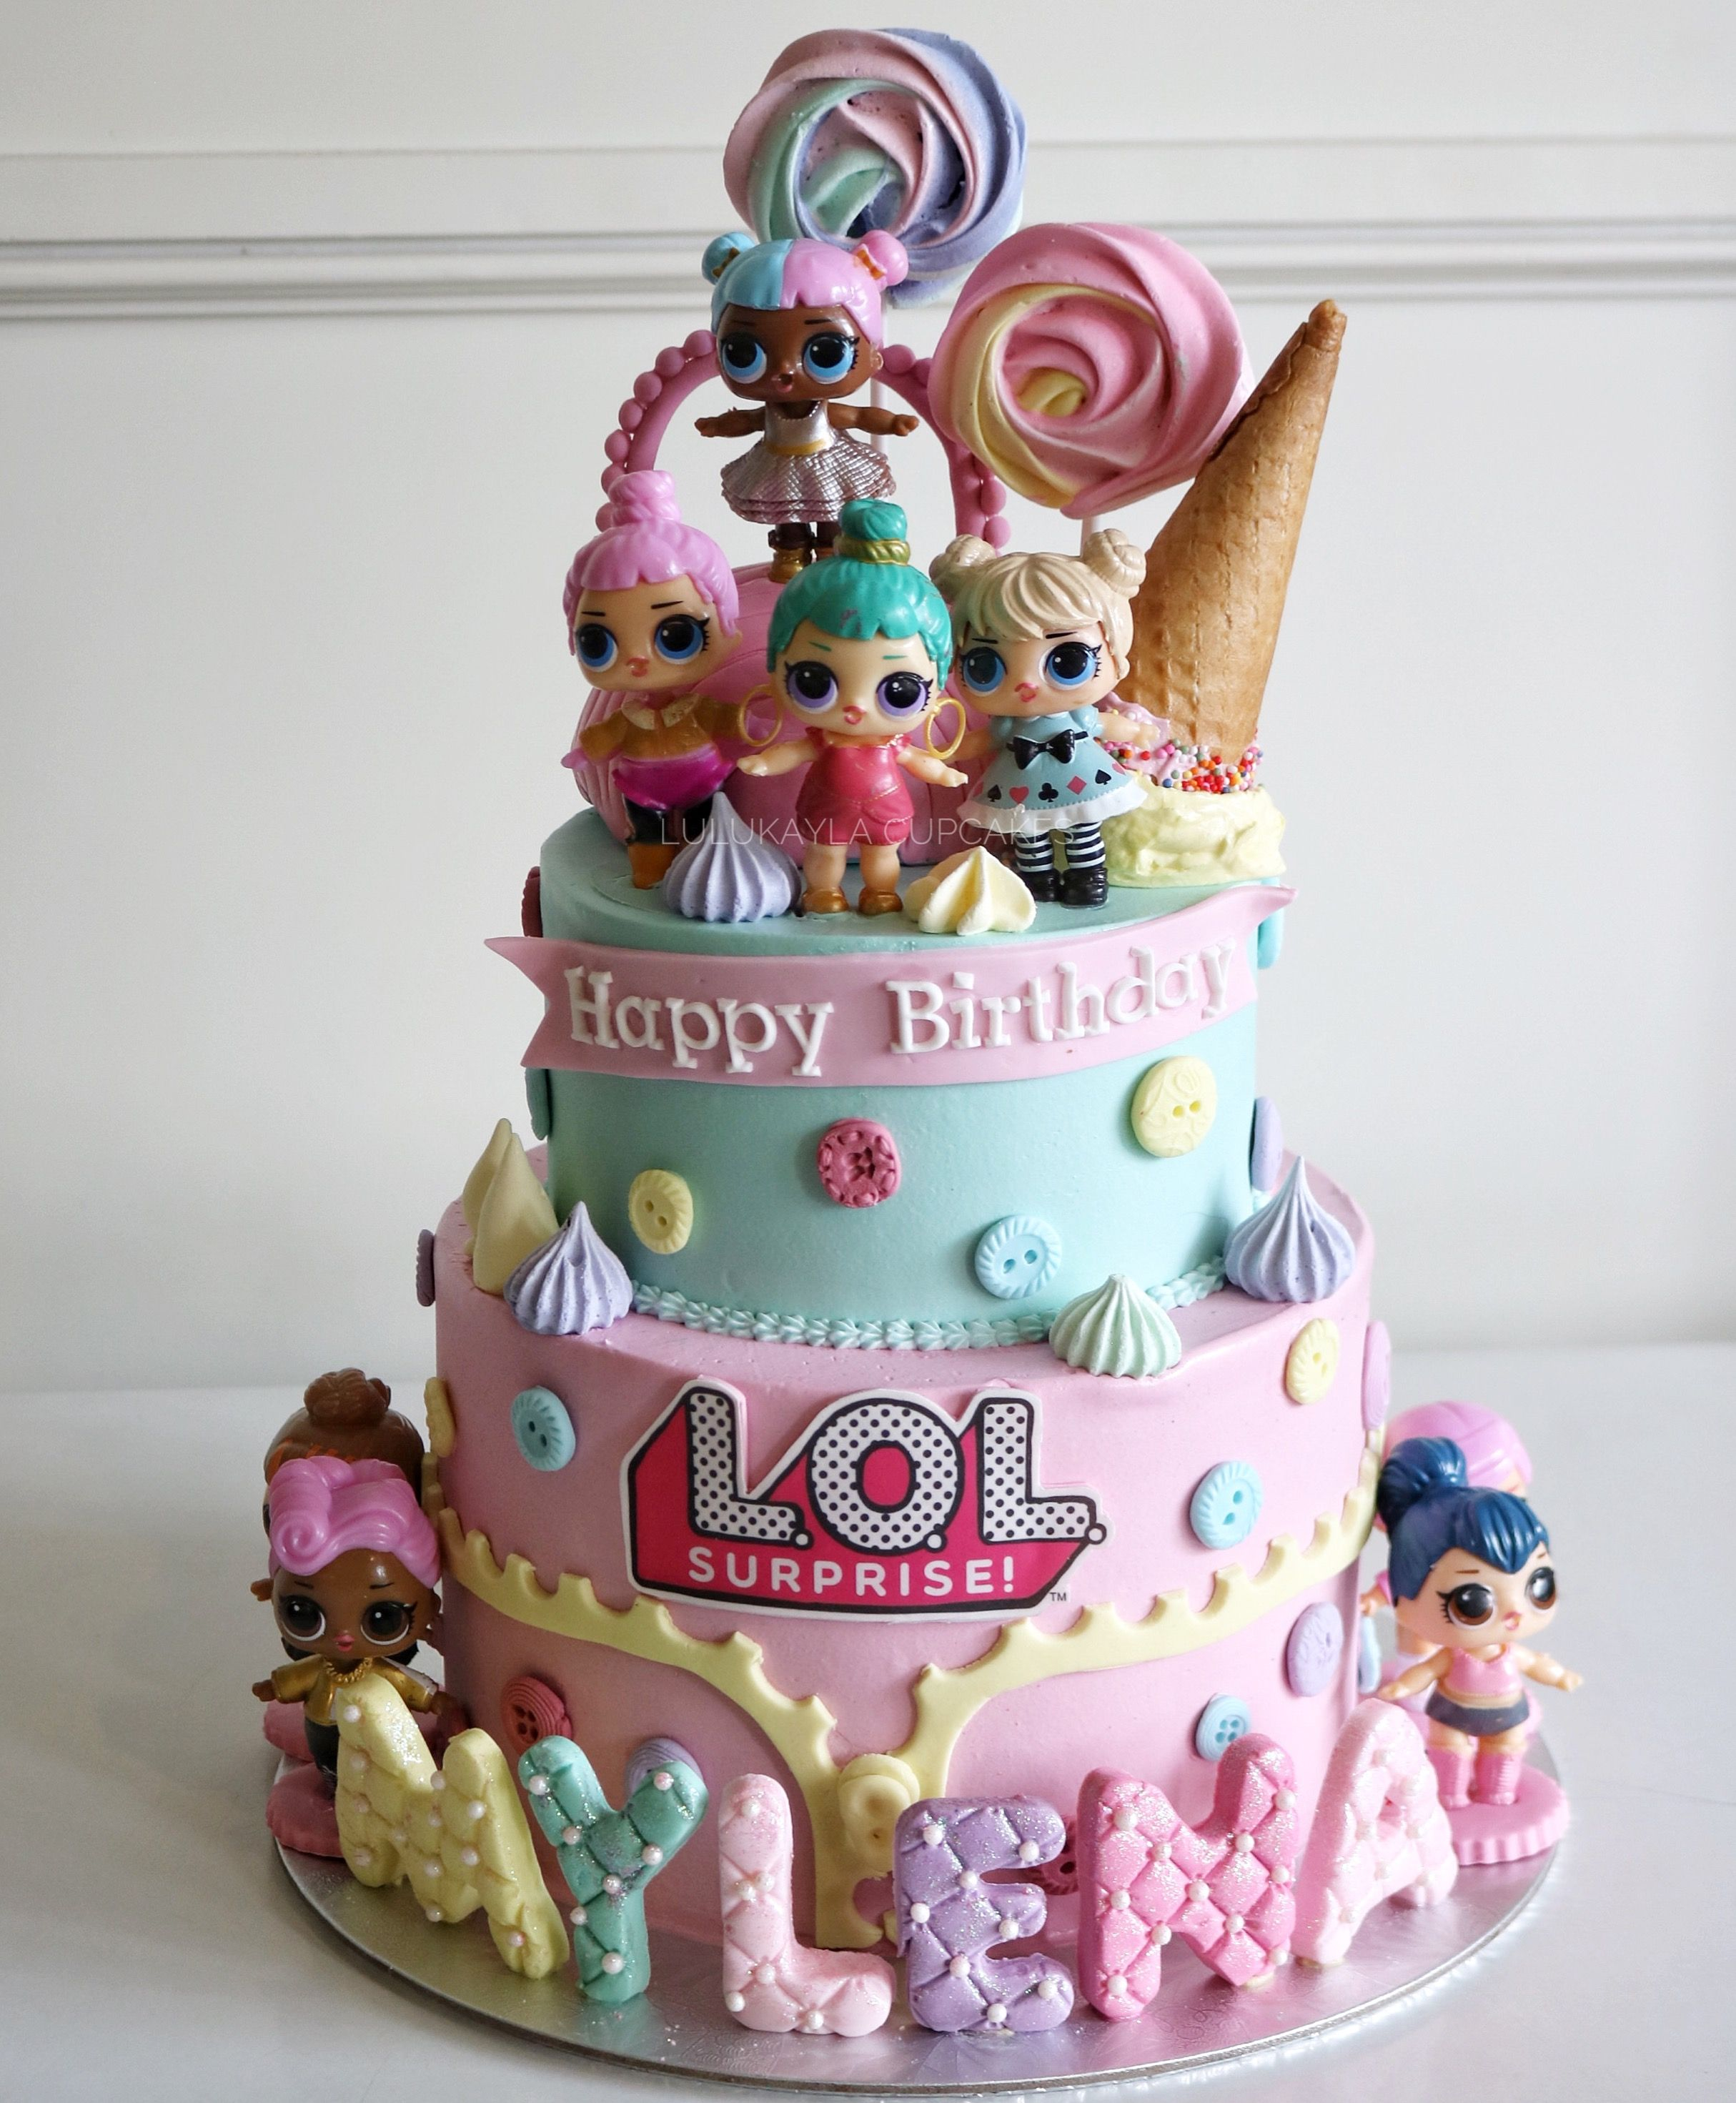 Lol Surprise Buttercream Cake Funny Birthday Cakes Birthday